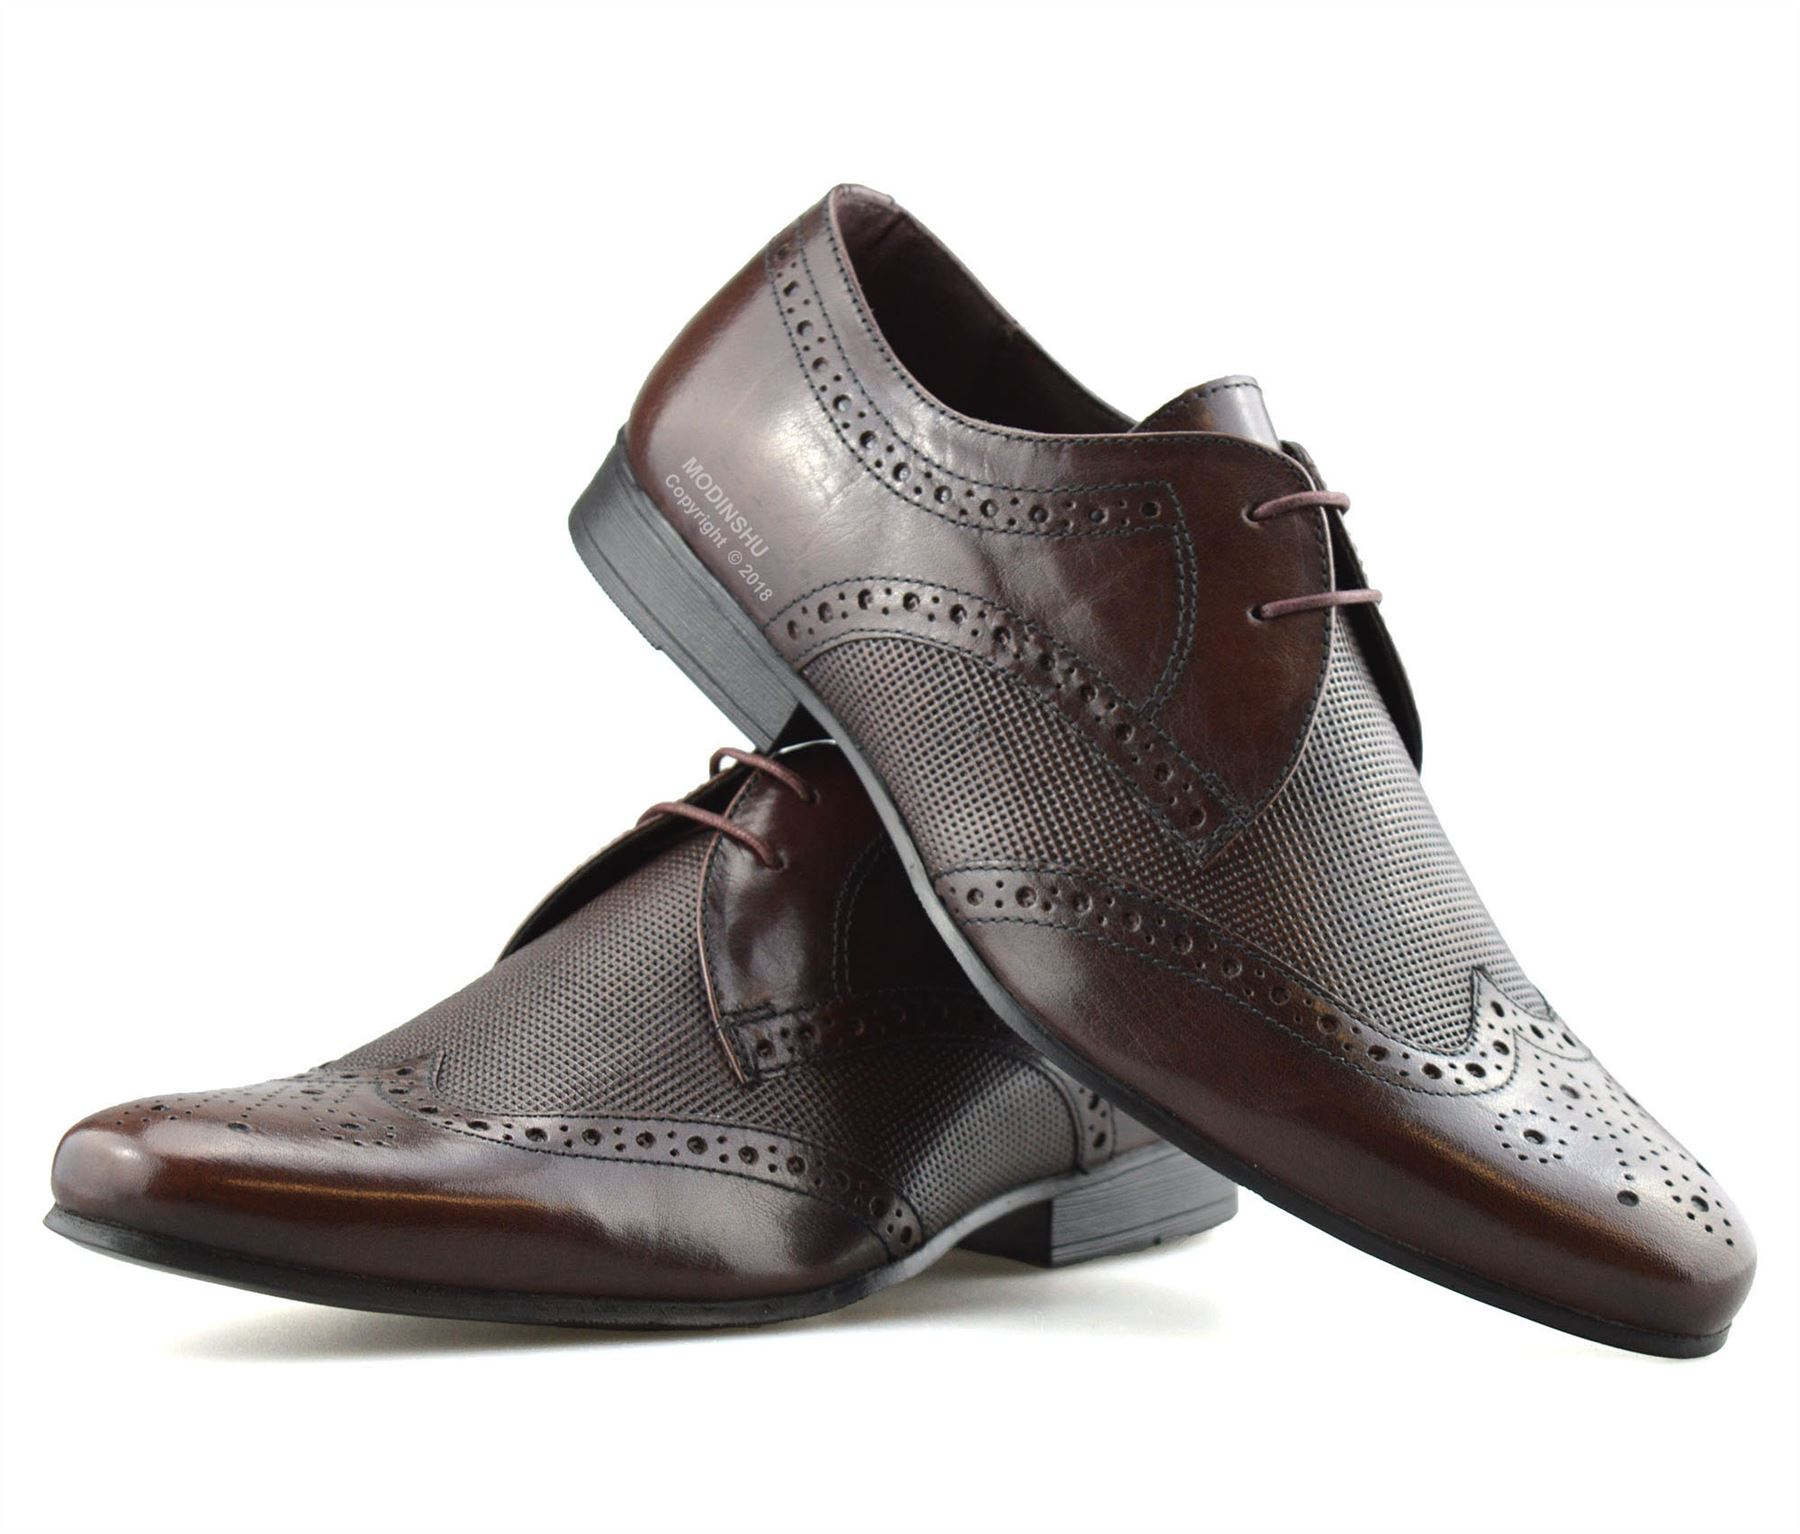 Mens-Leather-Lace-Up-Brogues-Smart-Formal-Office-Casual-Oxford-Brogue-Shoes-Size thumbnail 14